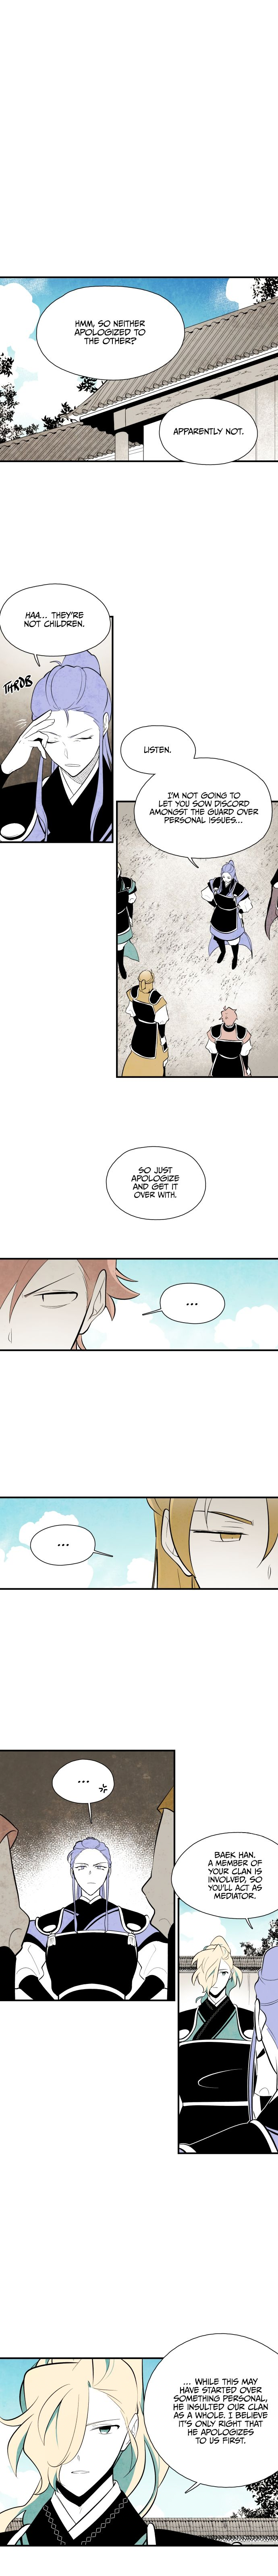 The Flower That Was Bloomed by a Cloud - chapter 74 - #2